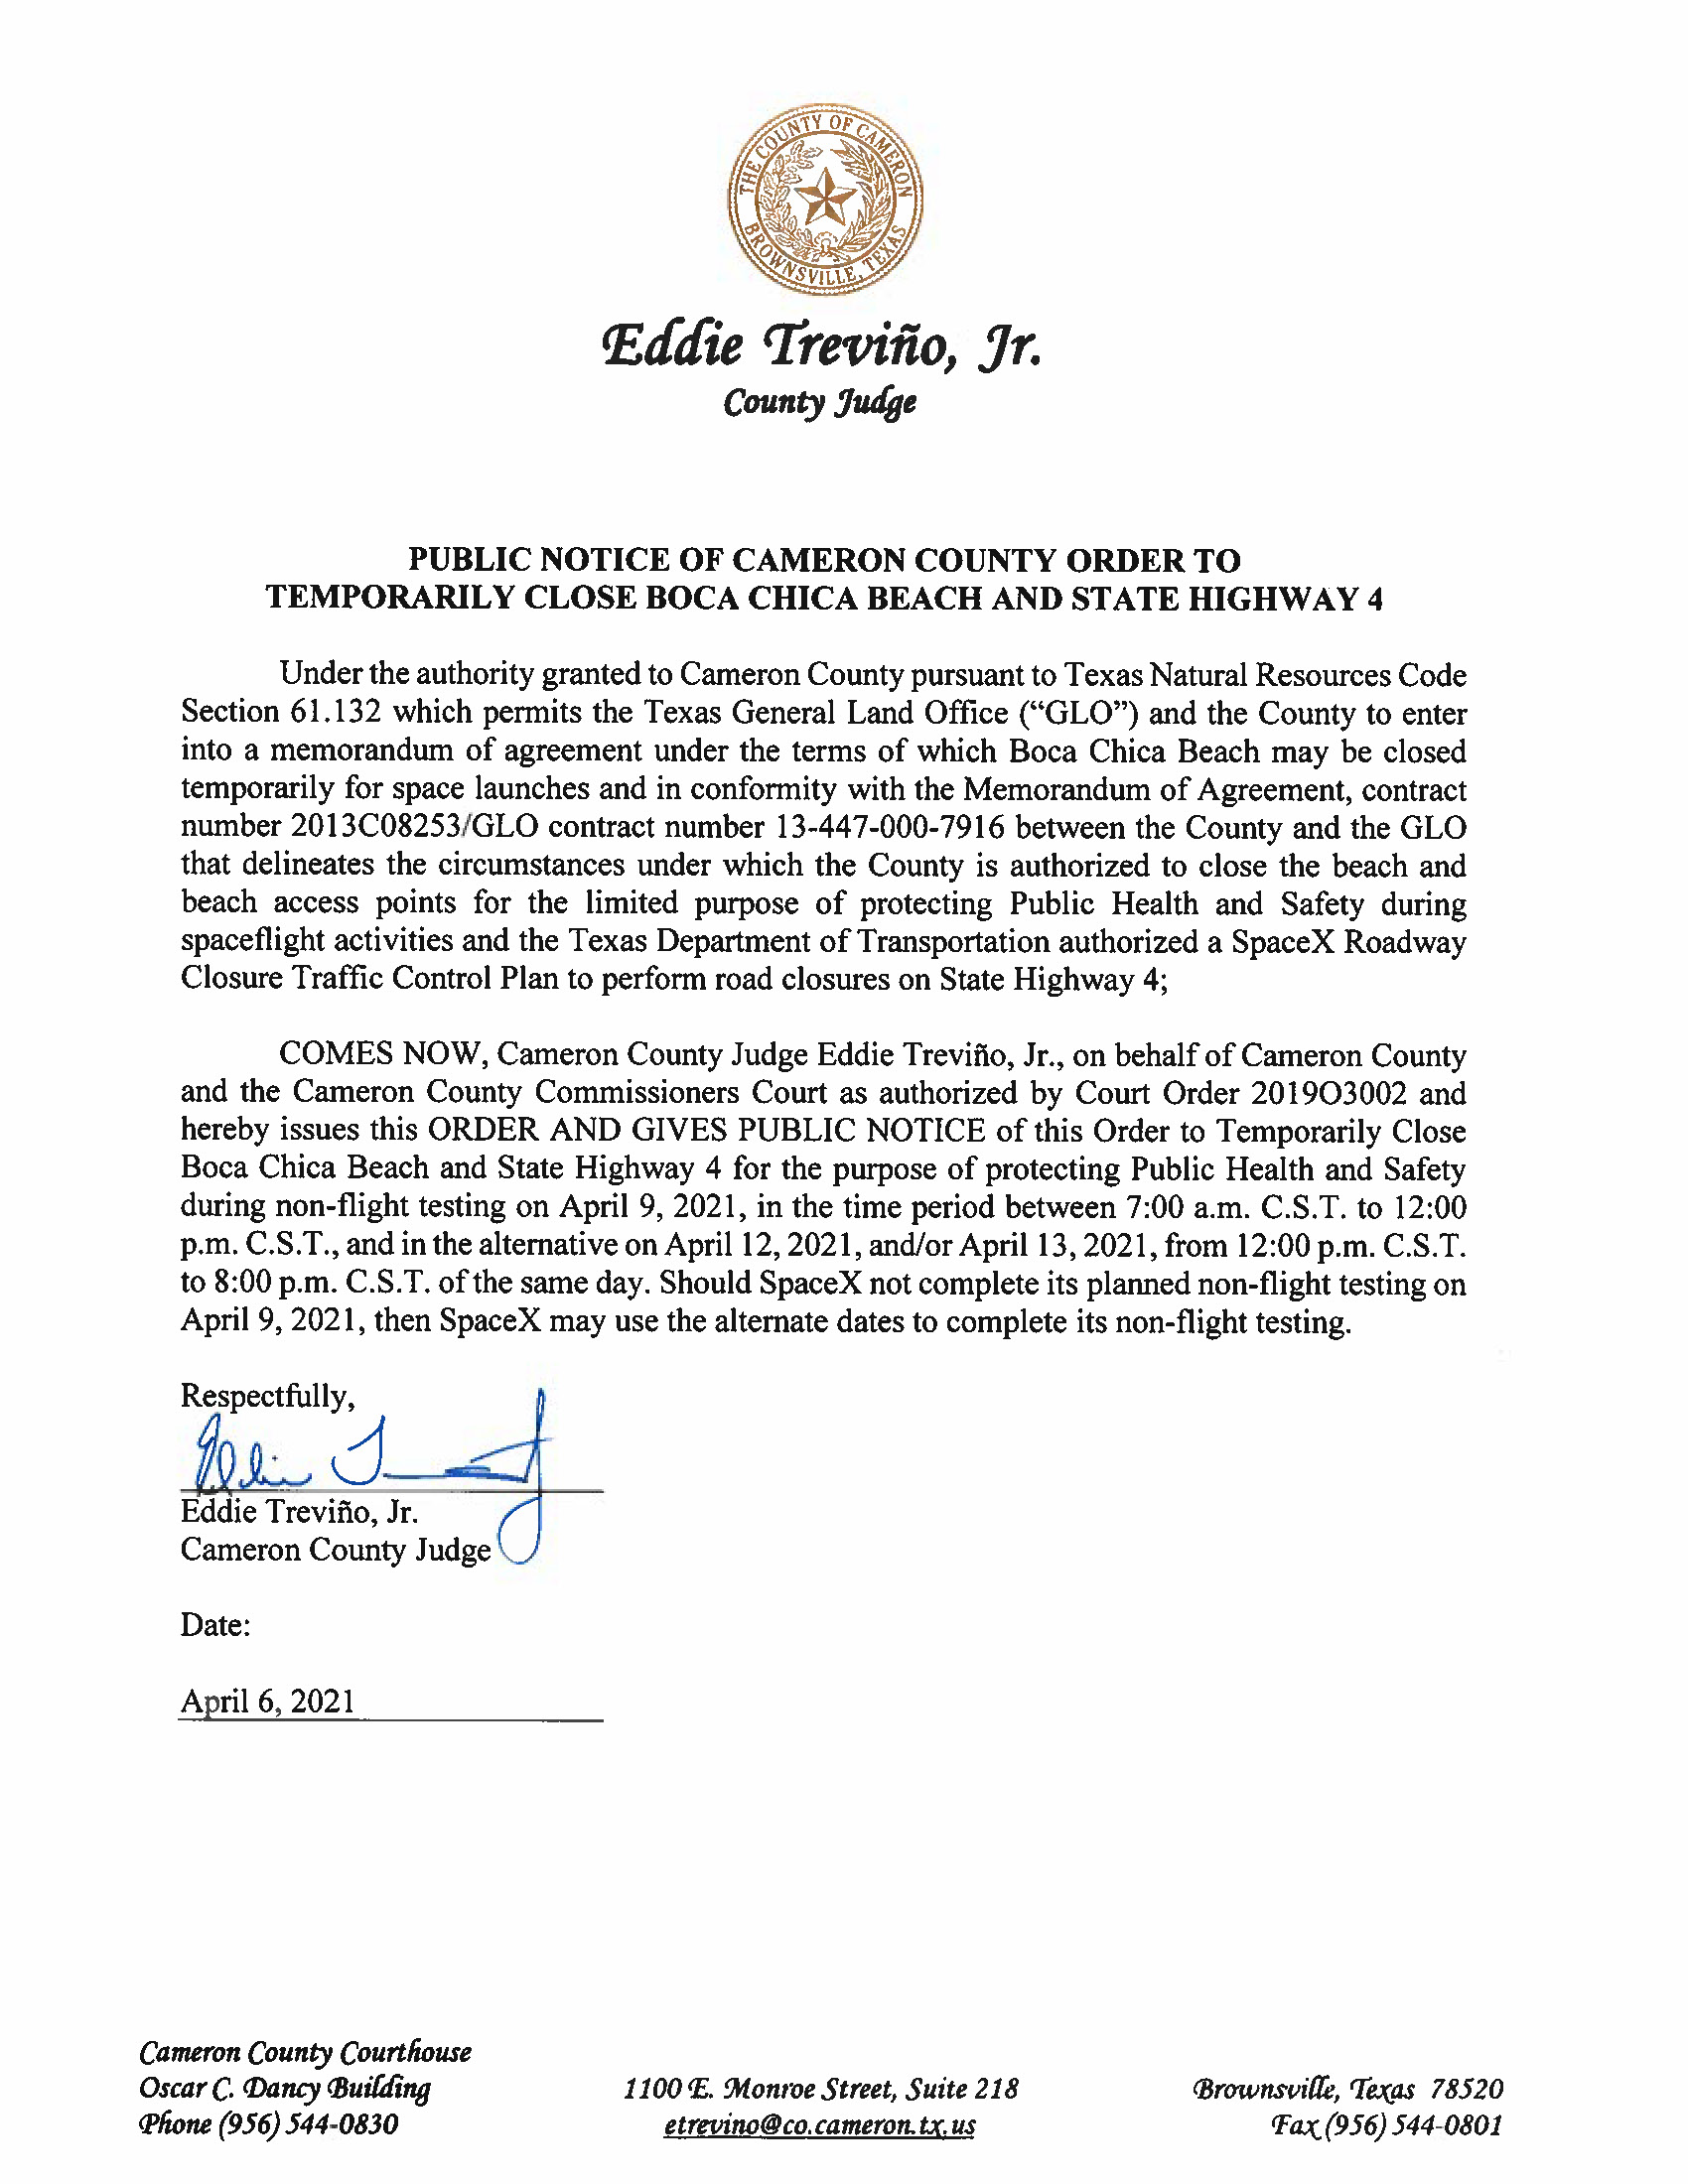 PUBLIC NOTICE OF CAMERON COUNTY ORDER TO TEMP. BEACH CLOSURE AND HWY.04.09.21.docx